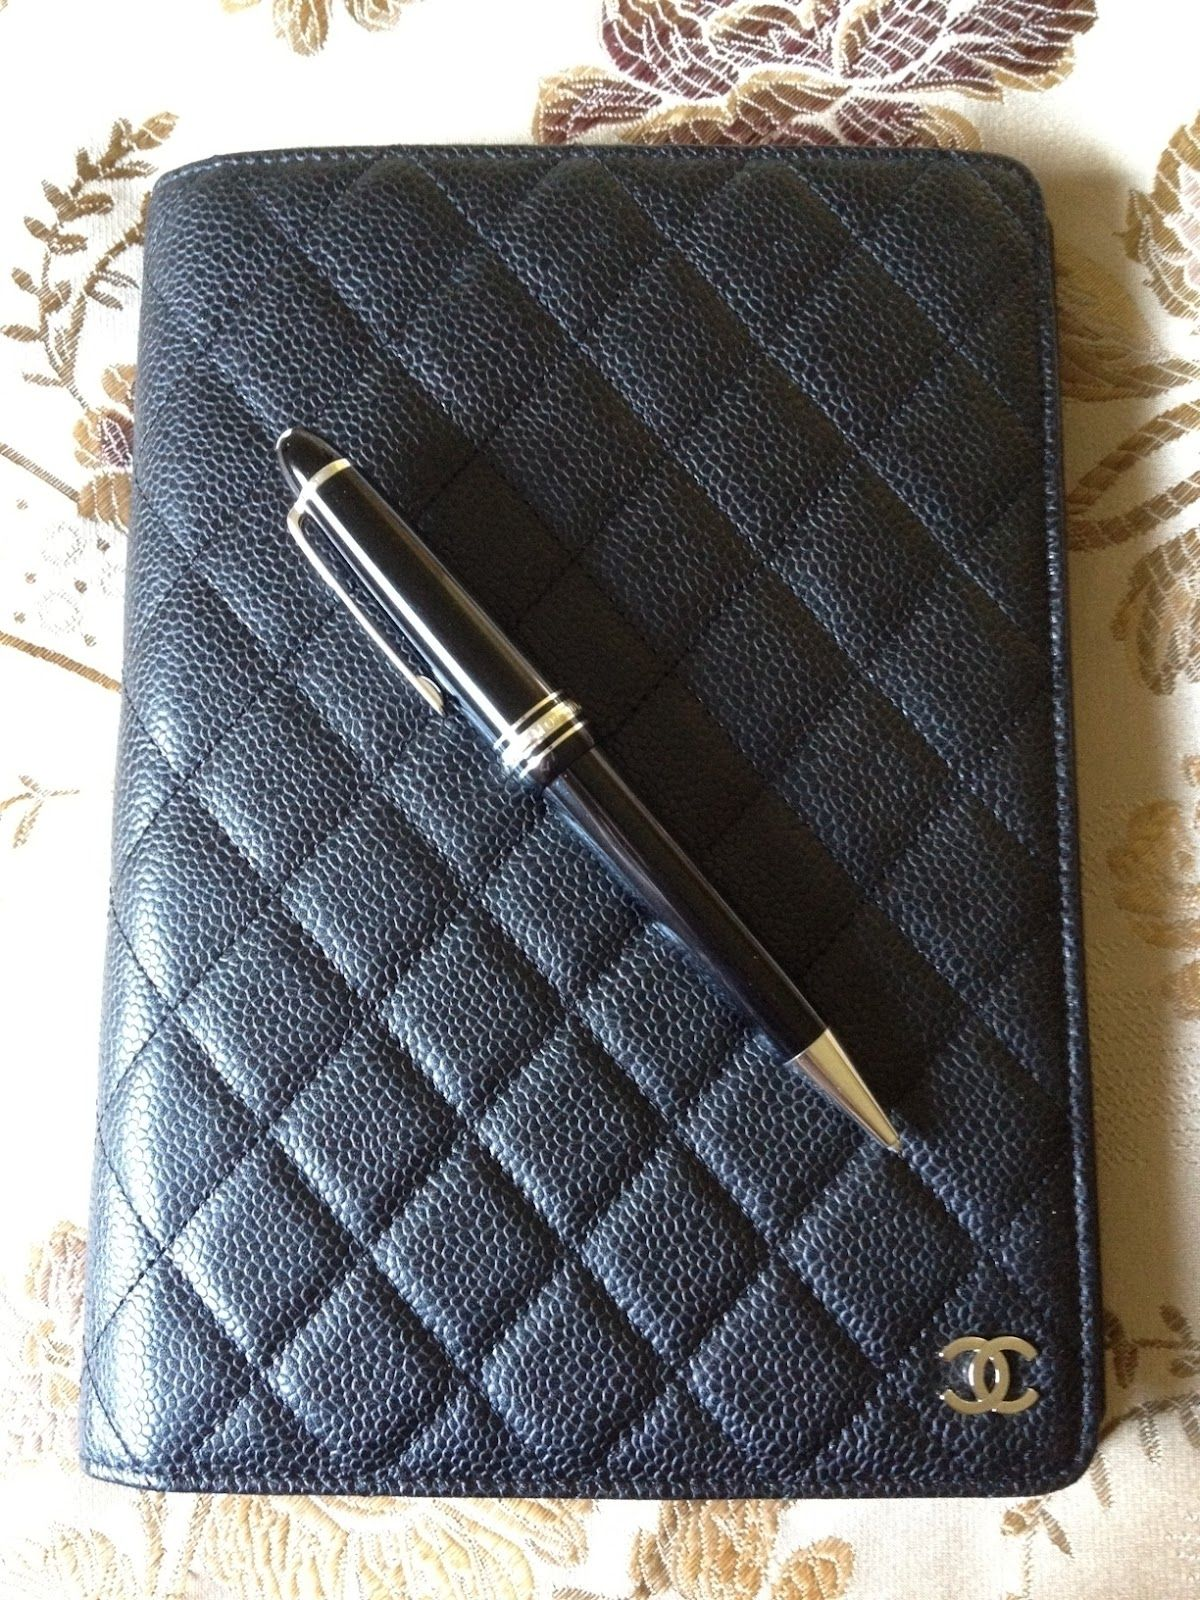 0ac972f2c197 Chanel agenda planner. One of my most coveted things right now. I don t  even care if its a Knockoff. Tee hee